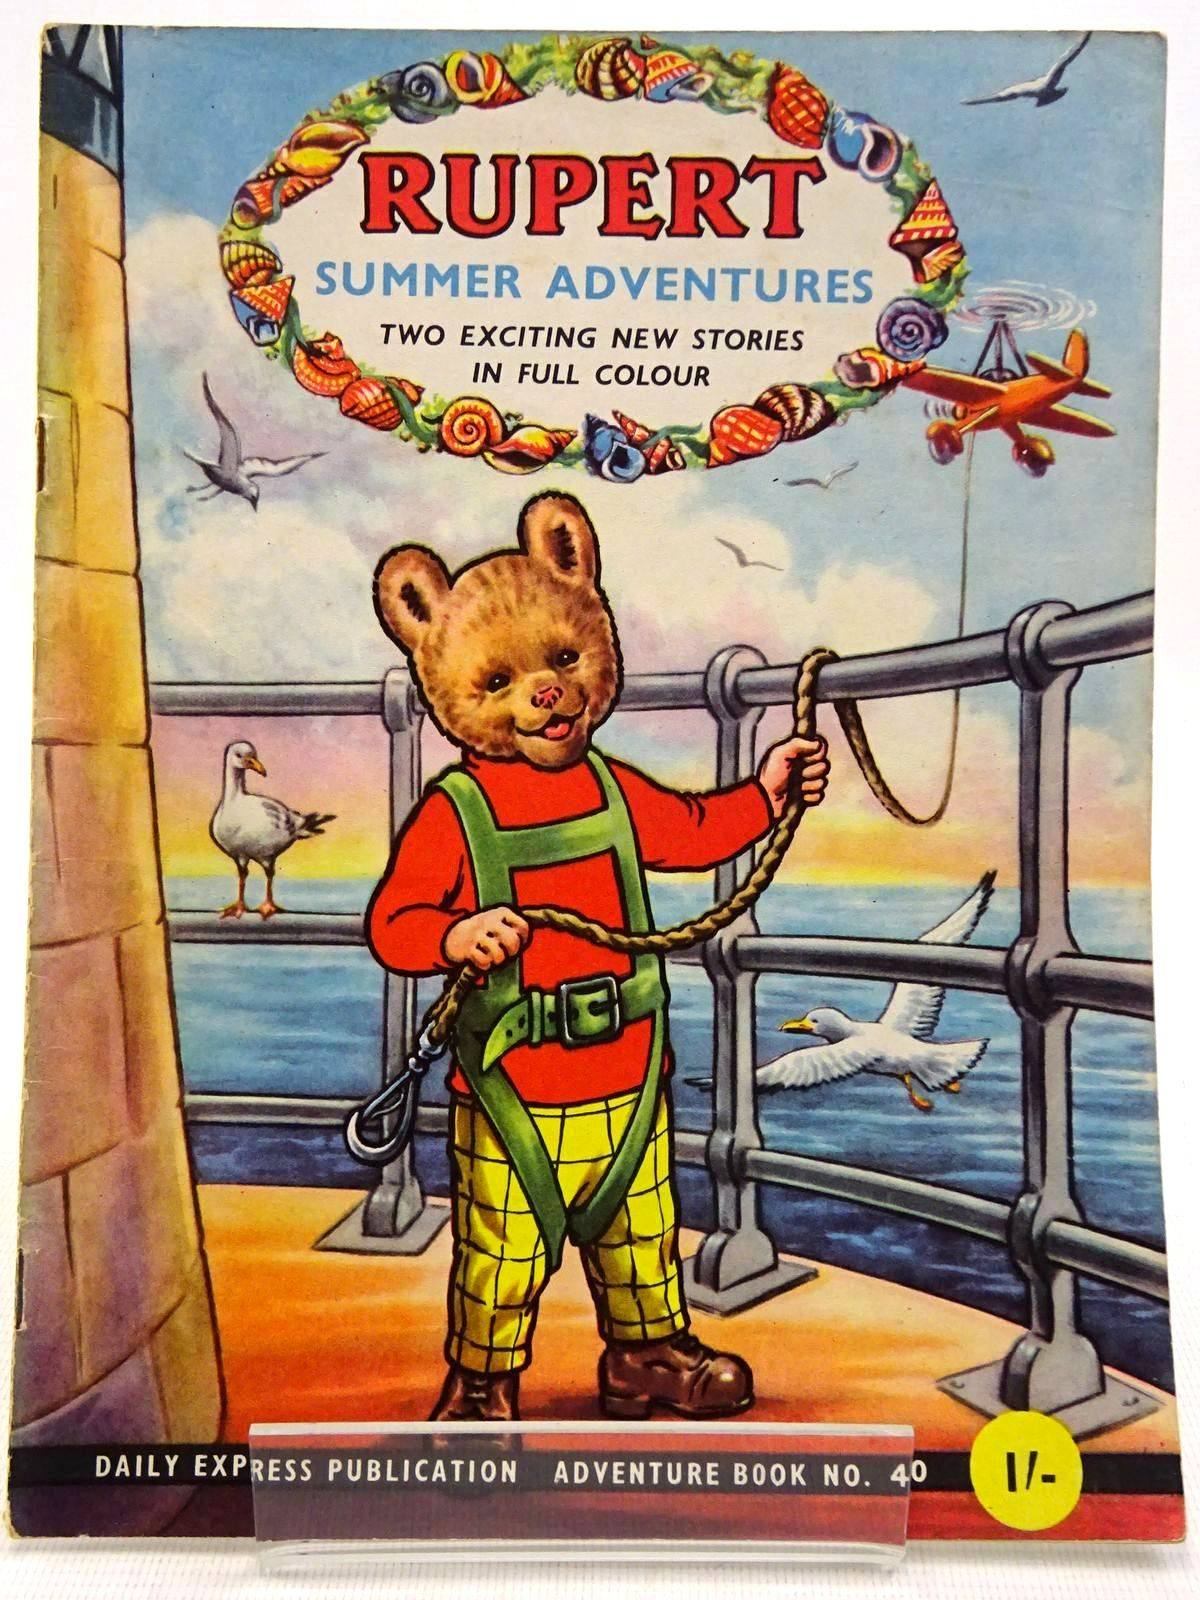 Photo of RUPERT ADVENTURE BOOK No. 40 - SUMMER ADVENTURES written by Bestall, Alfred published by Daily Express, Oldbourne Book Co. Ltd. (STOCK CODE: 2129240)  for sale by Stella & Rose's Books